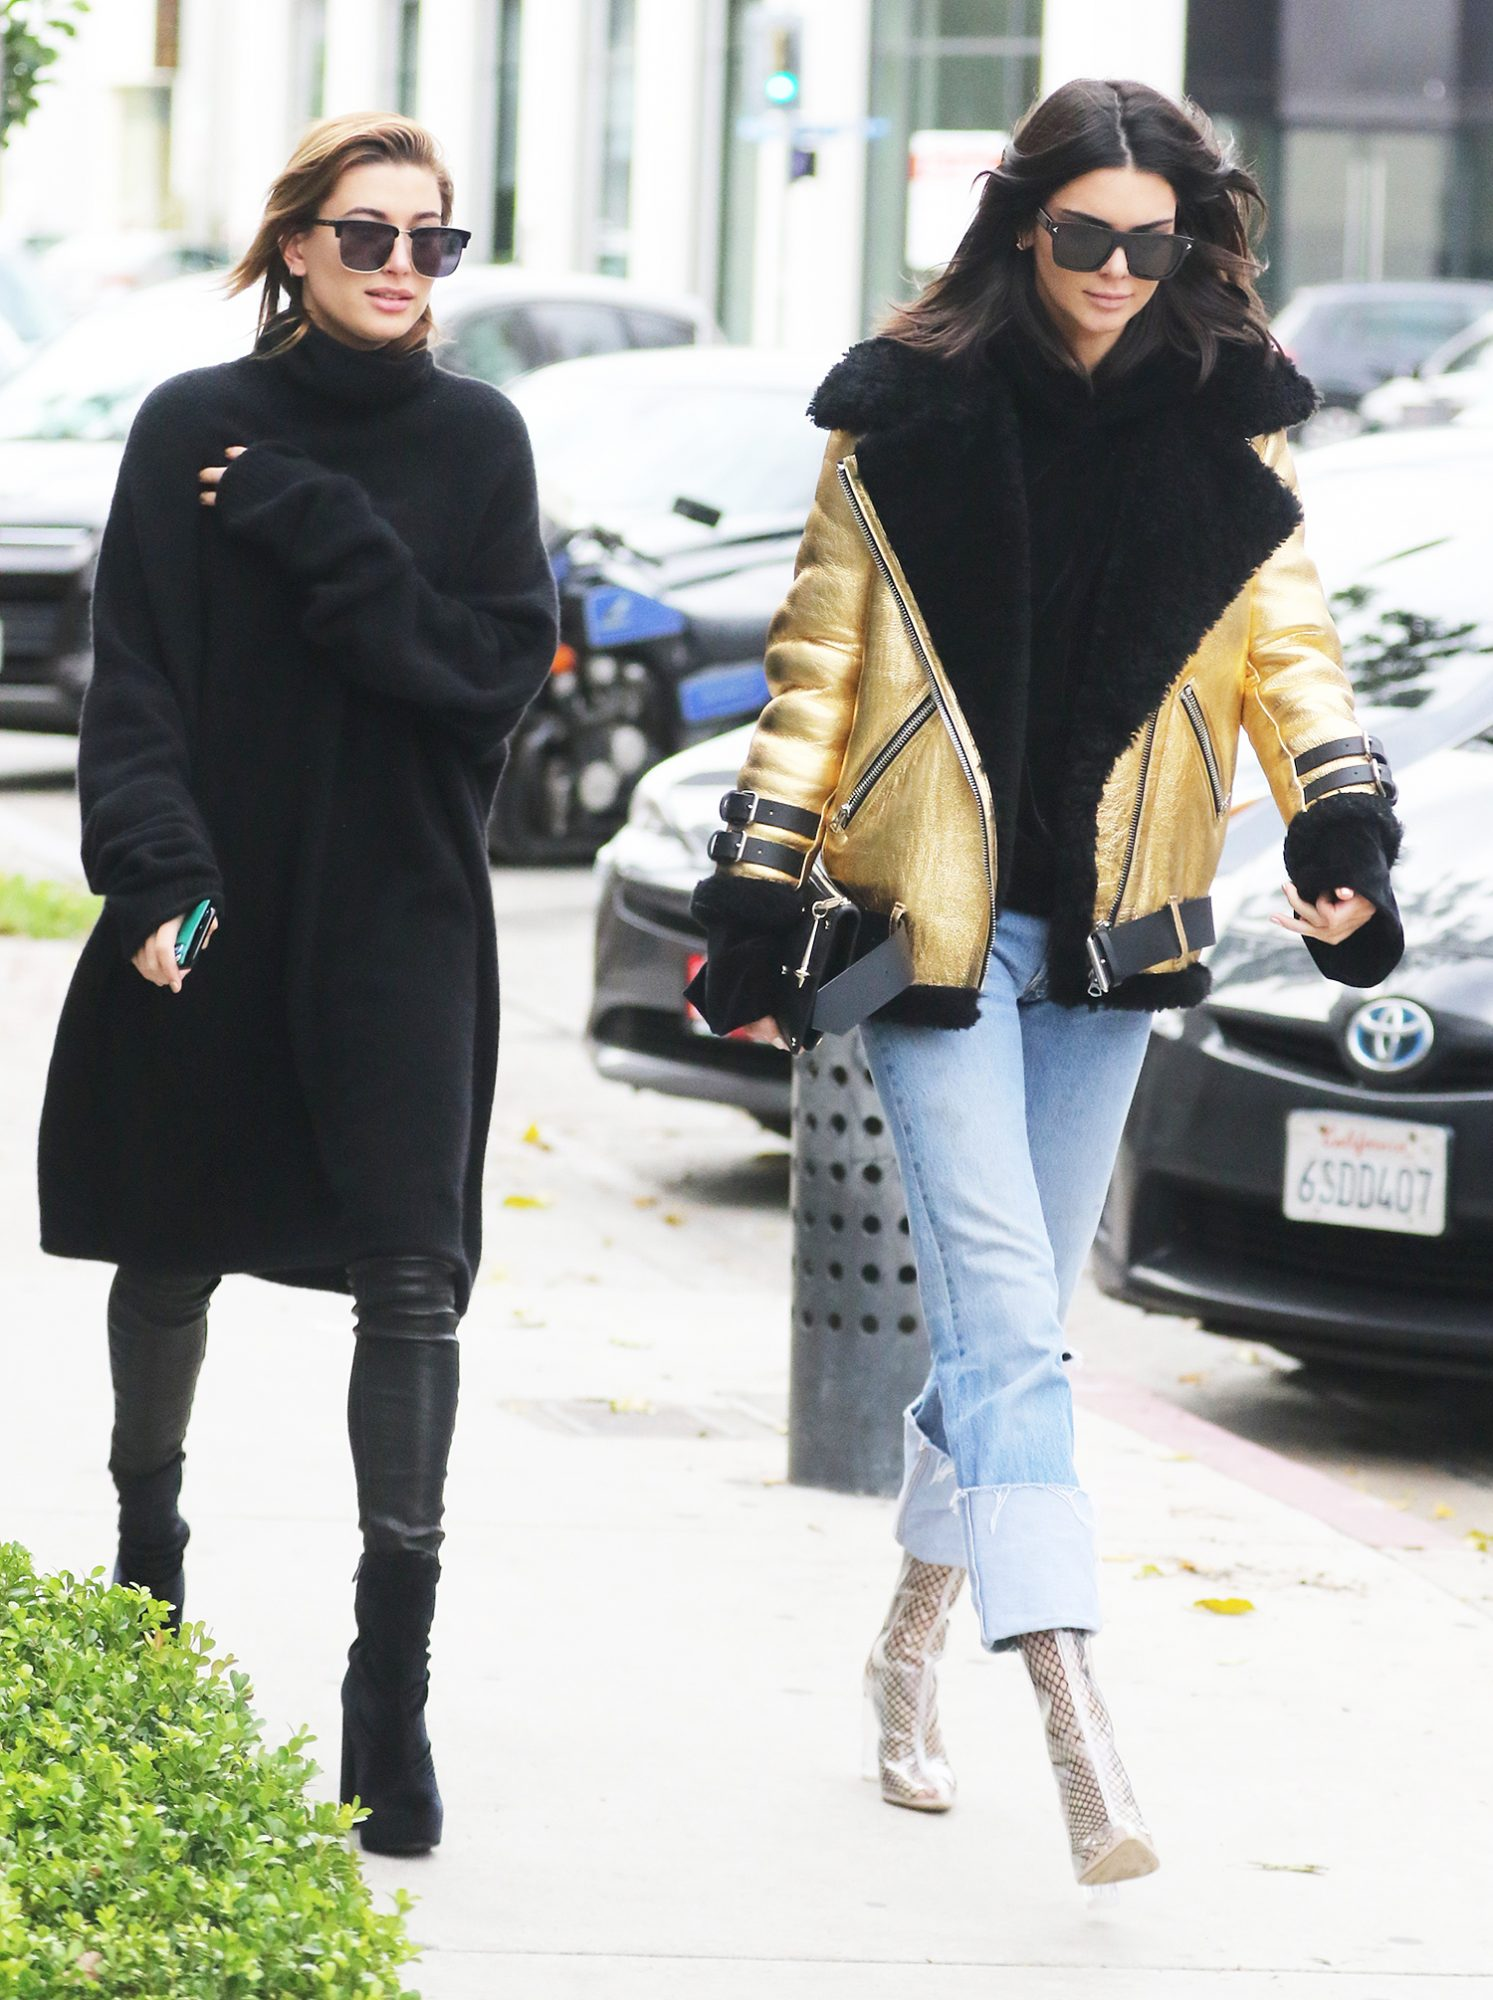 Kendall Jenner and Hailey Baldwin go on a shopping spree in LA together with Kendall's new dog